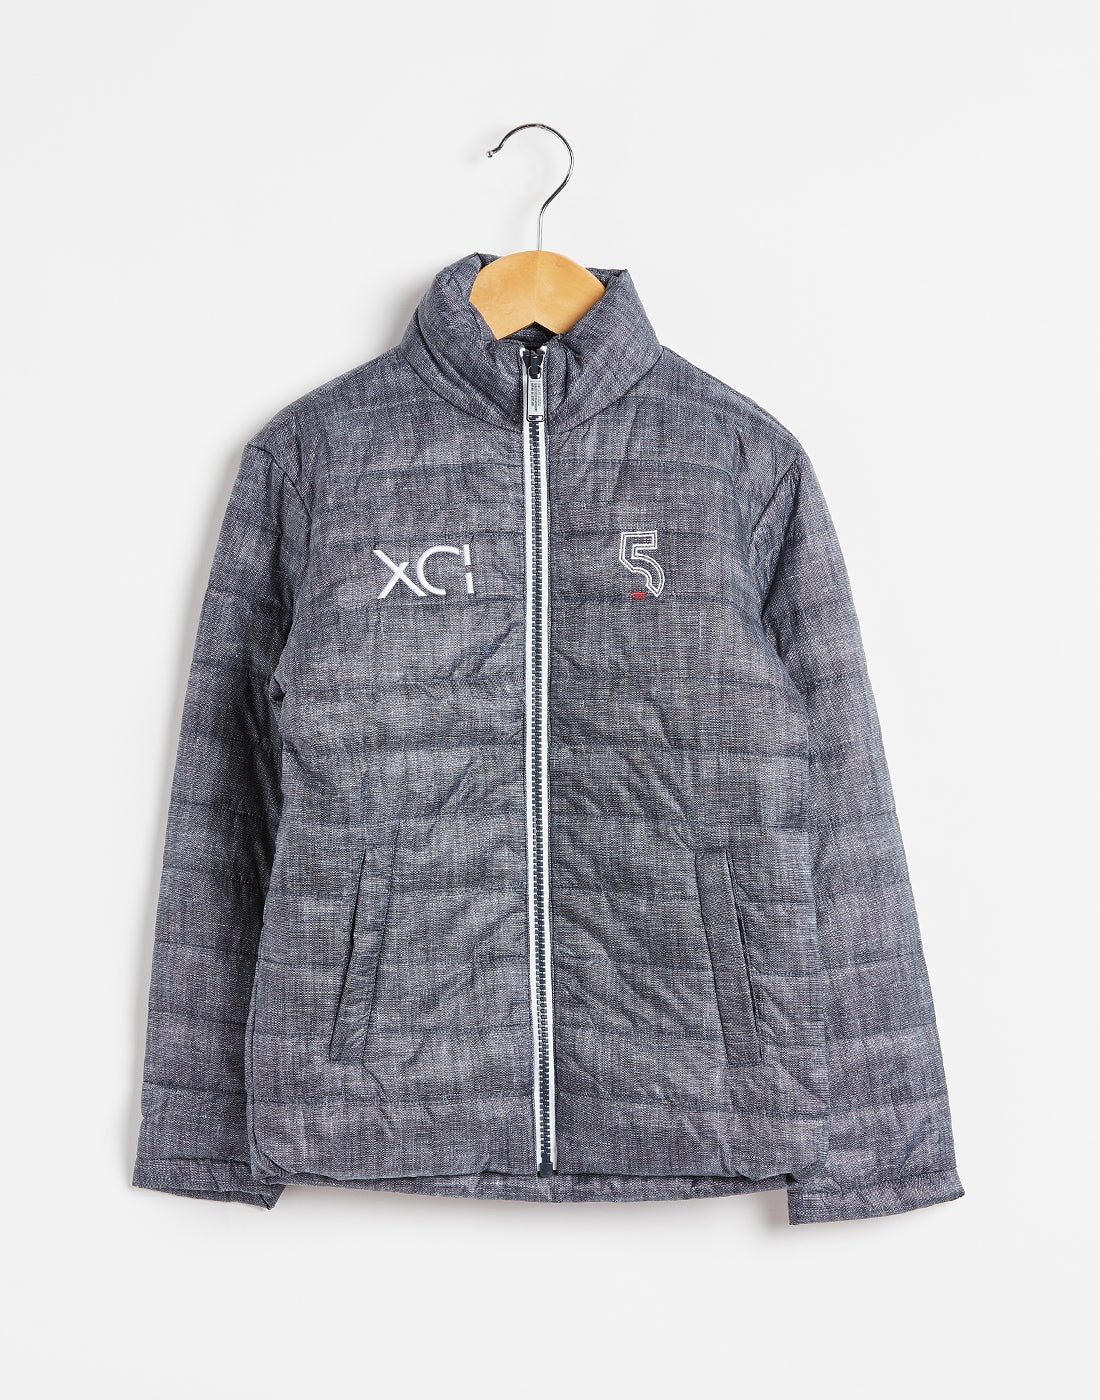 Octave Boys Navy Quilted Jacket